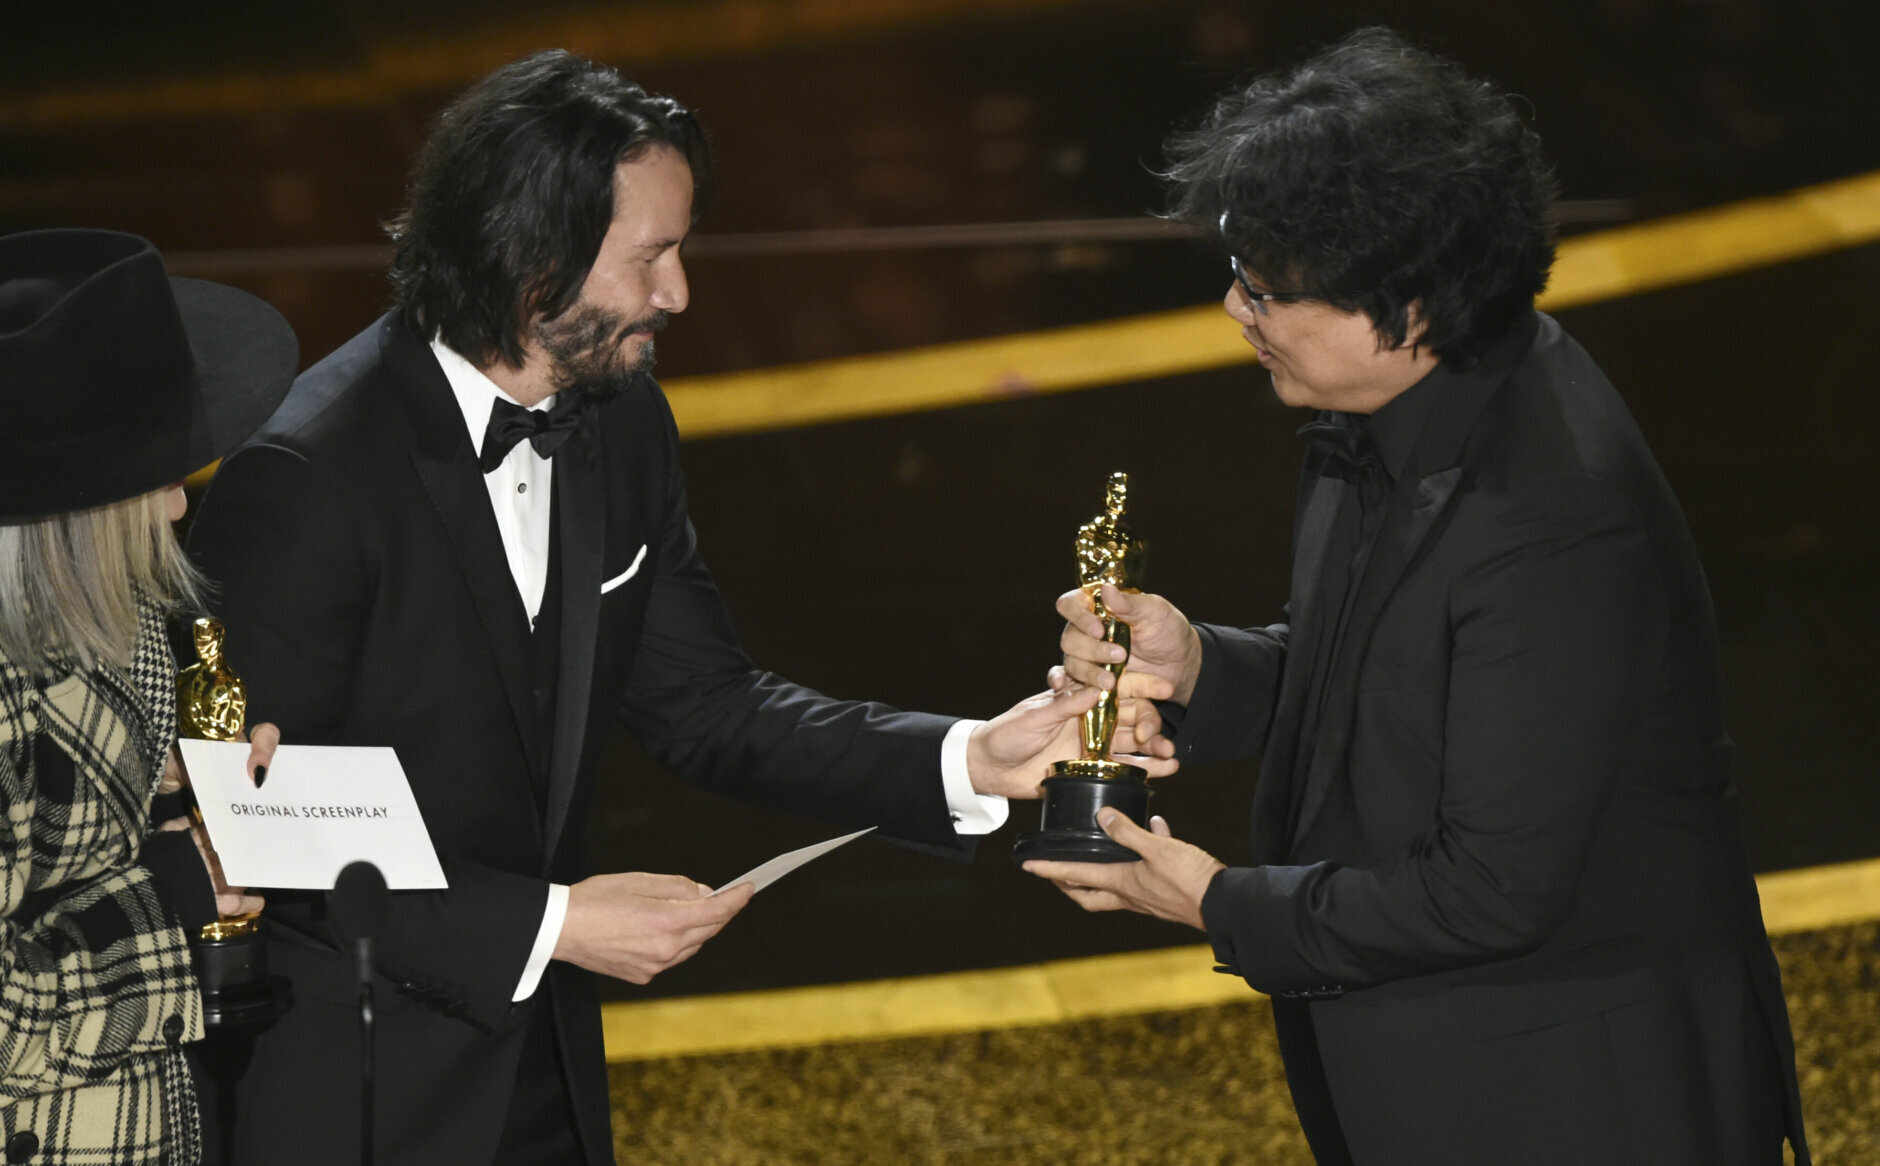 """Diane Keaton, from left, and Keanu Reeves present the award for best original screenplay to Bong Joon Ho for """"Parasite"""" at the Oscars on Sunday, Feb. 9, 2020, at the Dolby Theatre in Los Angeles. (AP Photo/Chris Pizzello)"""